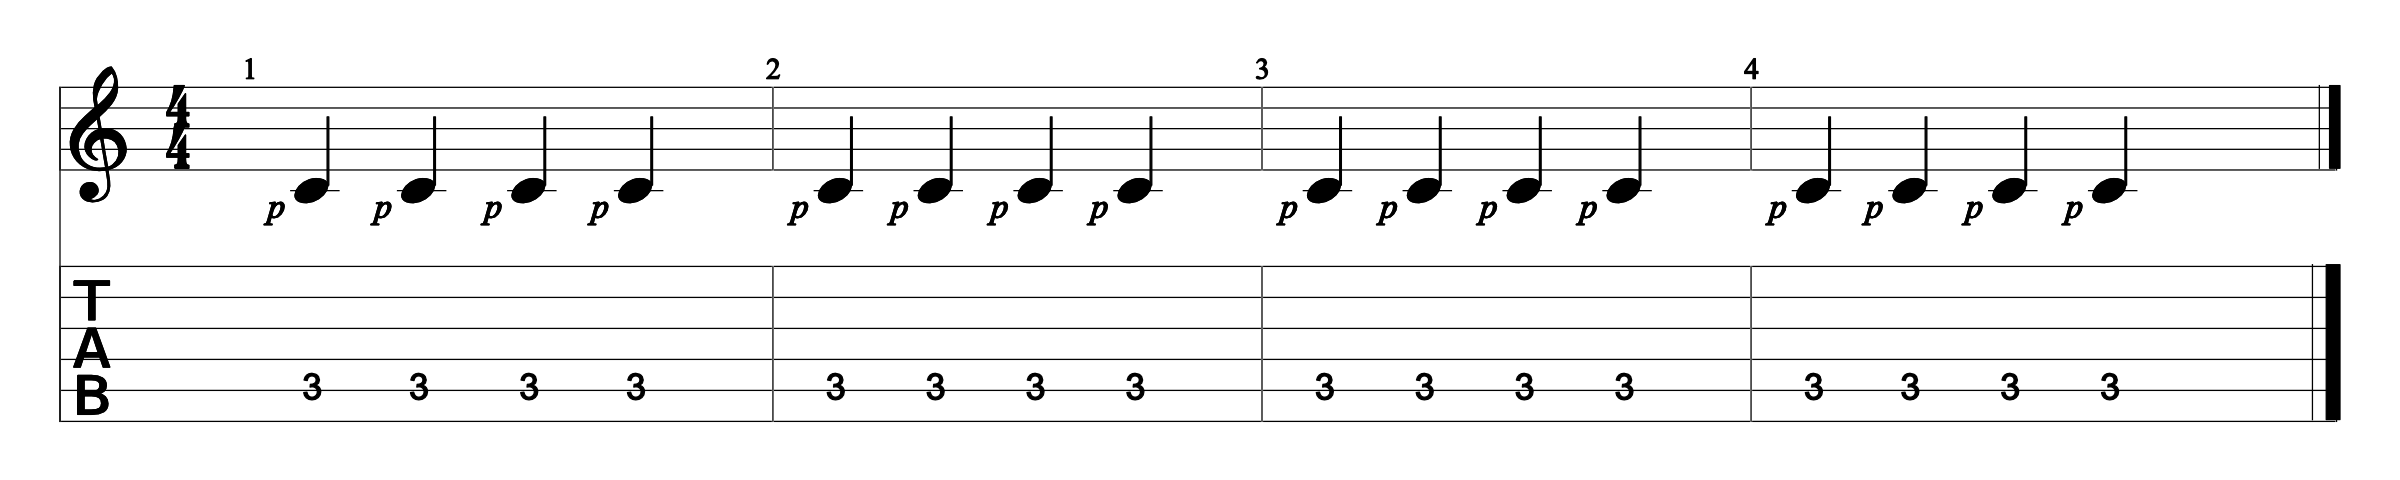 Constant Bass Exercise 1